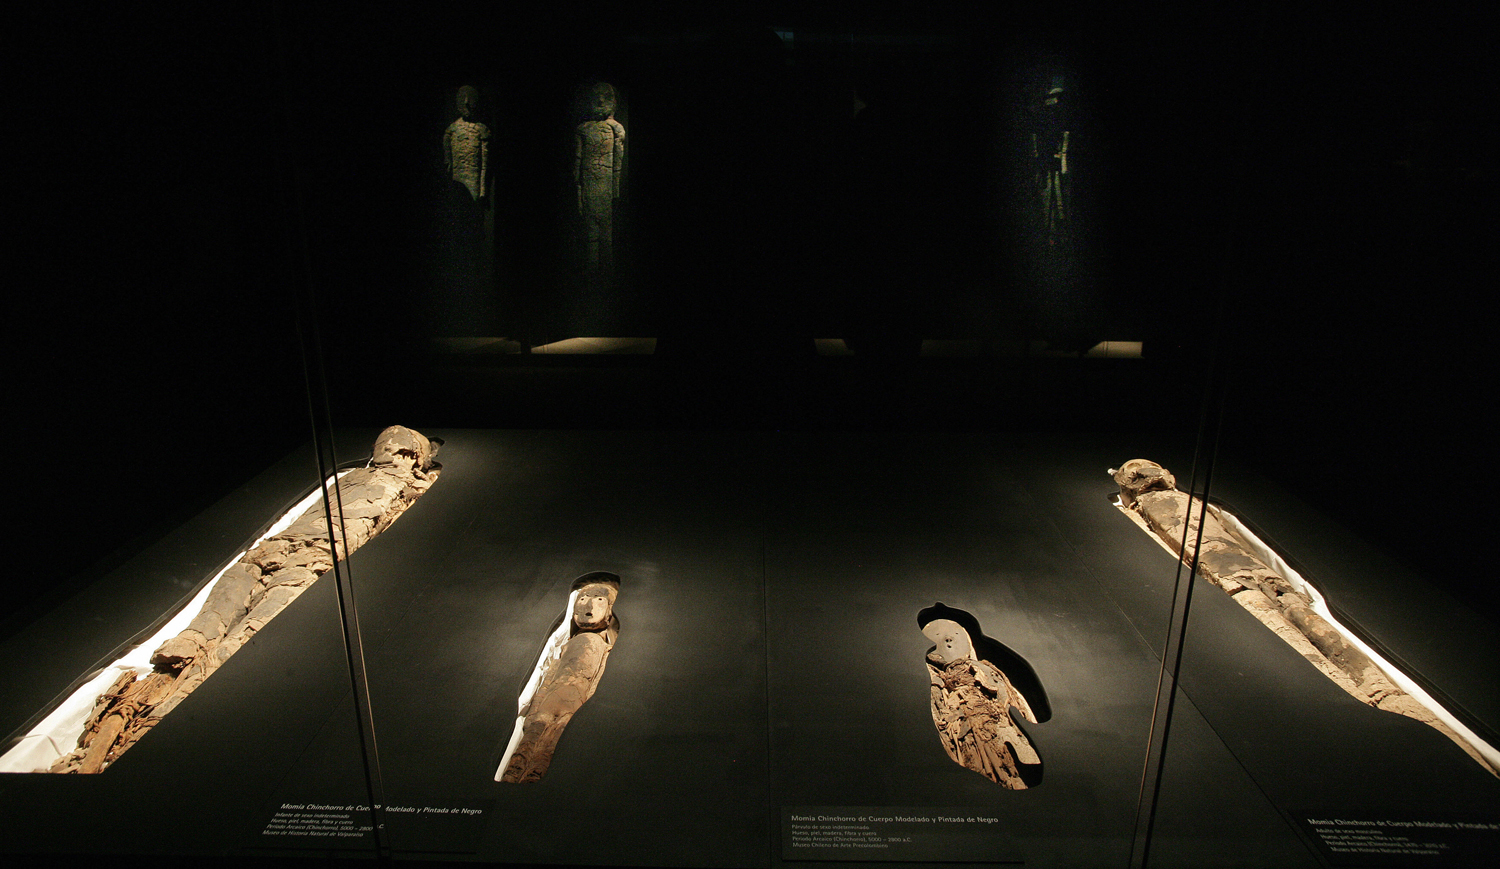 A group of Chinchorro mummies — dated between 5000 B.C. and 3000 B.C. — are on display during the exhibition  Arica, a Thousand-Year-Old Culture,  on Aug. 27, 2008, in the cultural center of the La Moneda presidential palace in Santiago, Chile